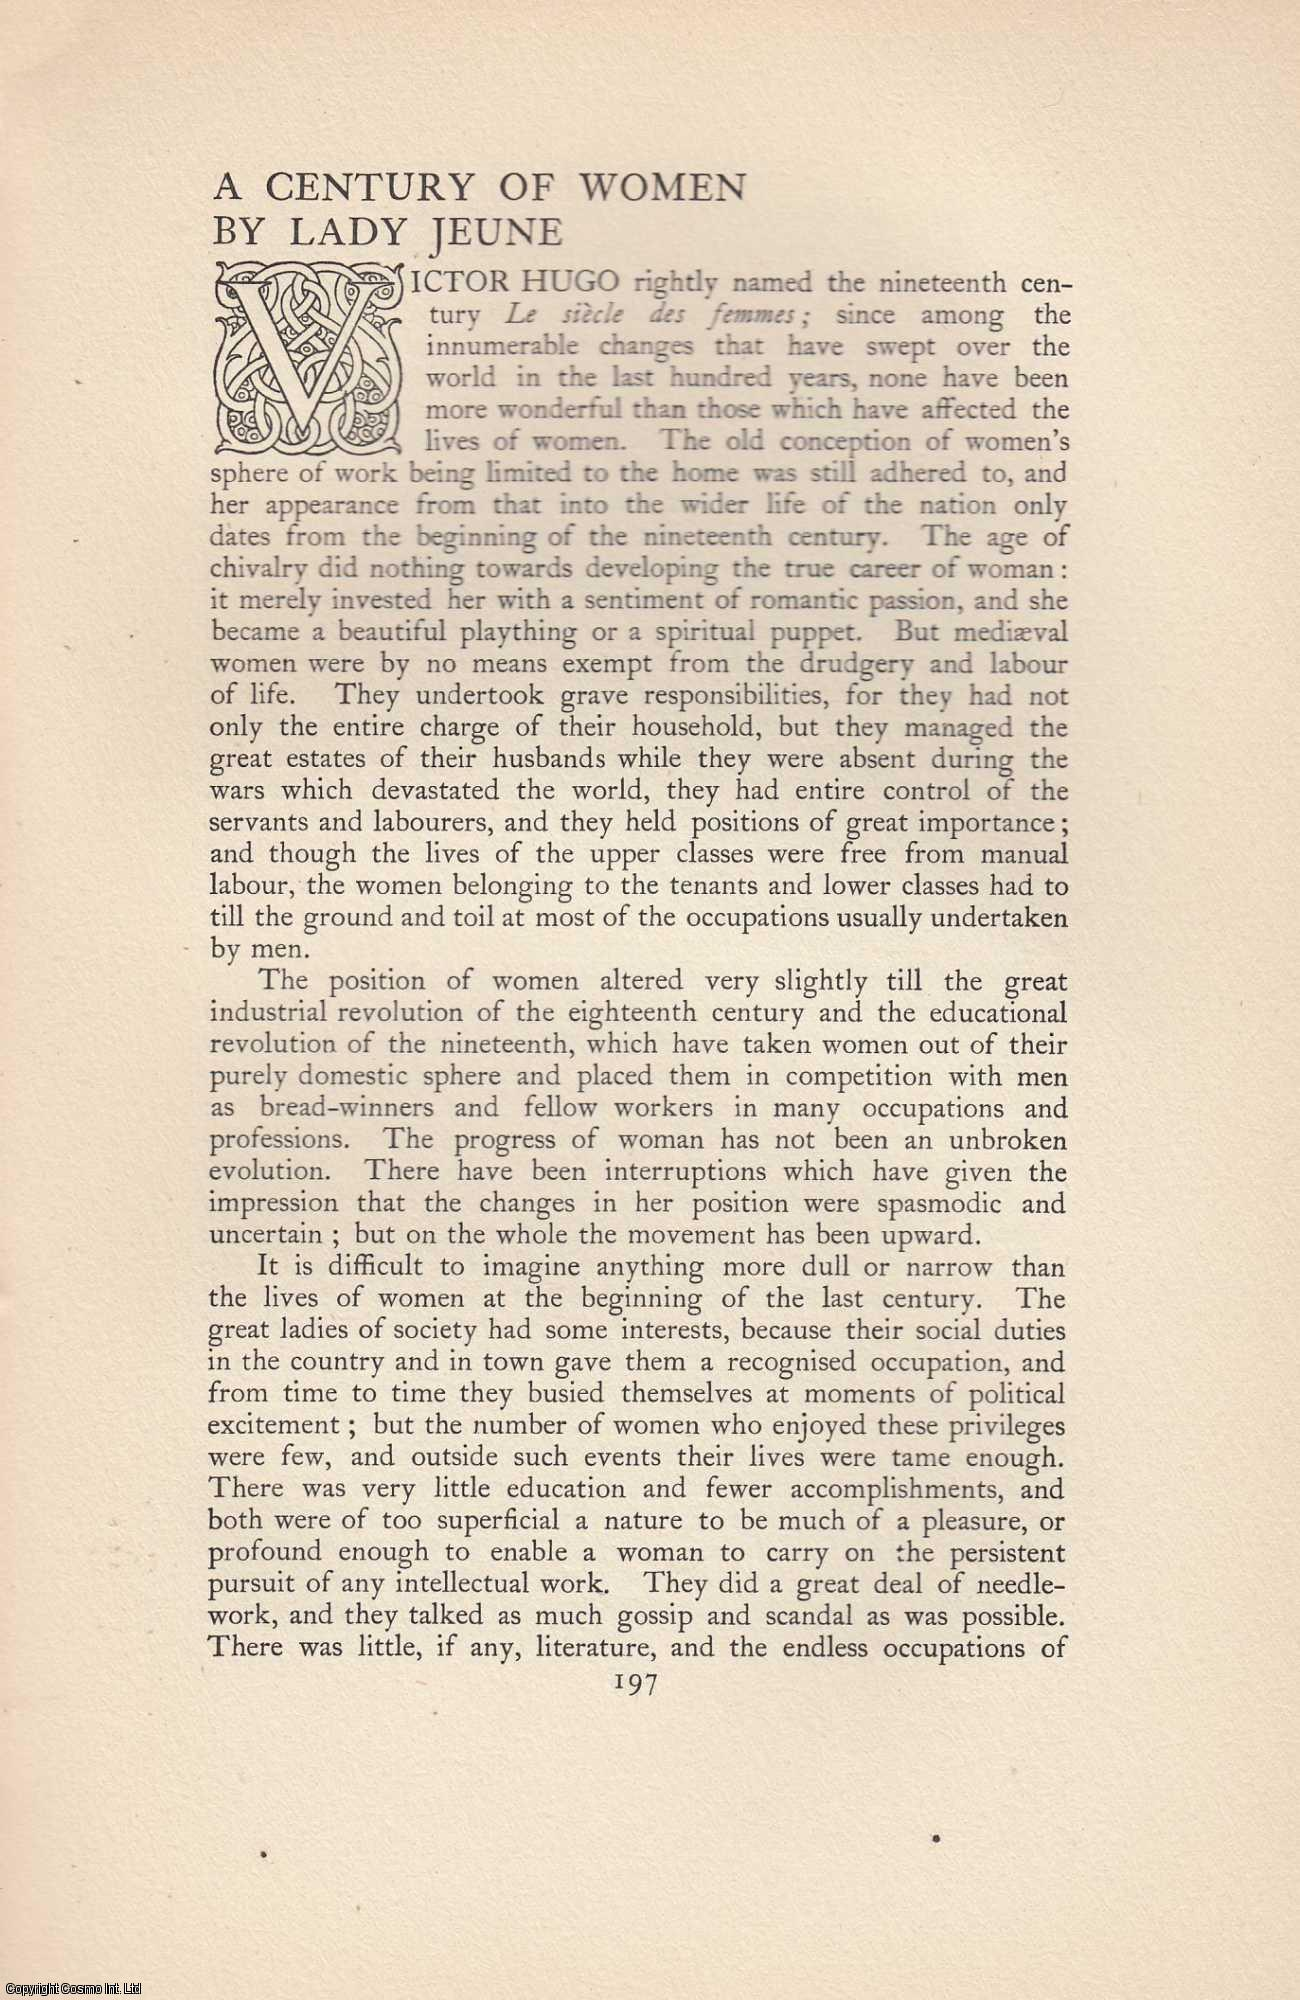 LADY JEUNE - A Century of Women. An original article from The Anglo Saxon Review. John Lane 1900.